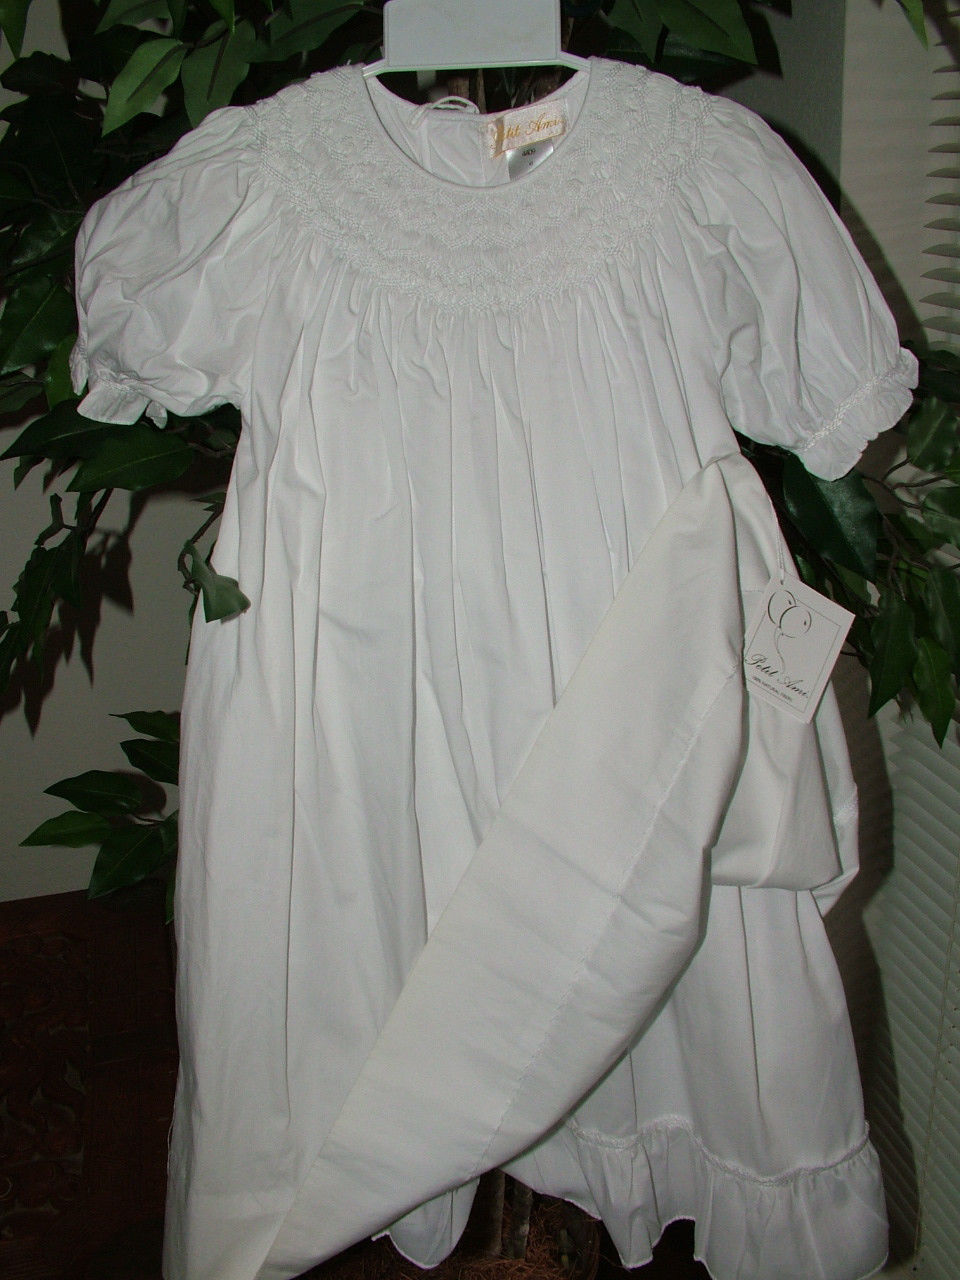 Image 4 of Gorgeous Petit Ami White Heirloom Boutique Lined Party Dress, Wedding - White -